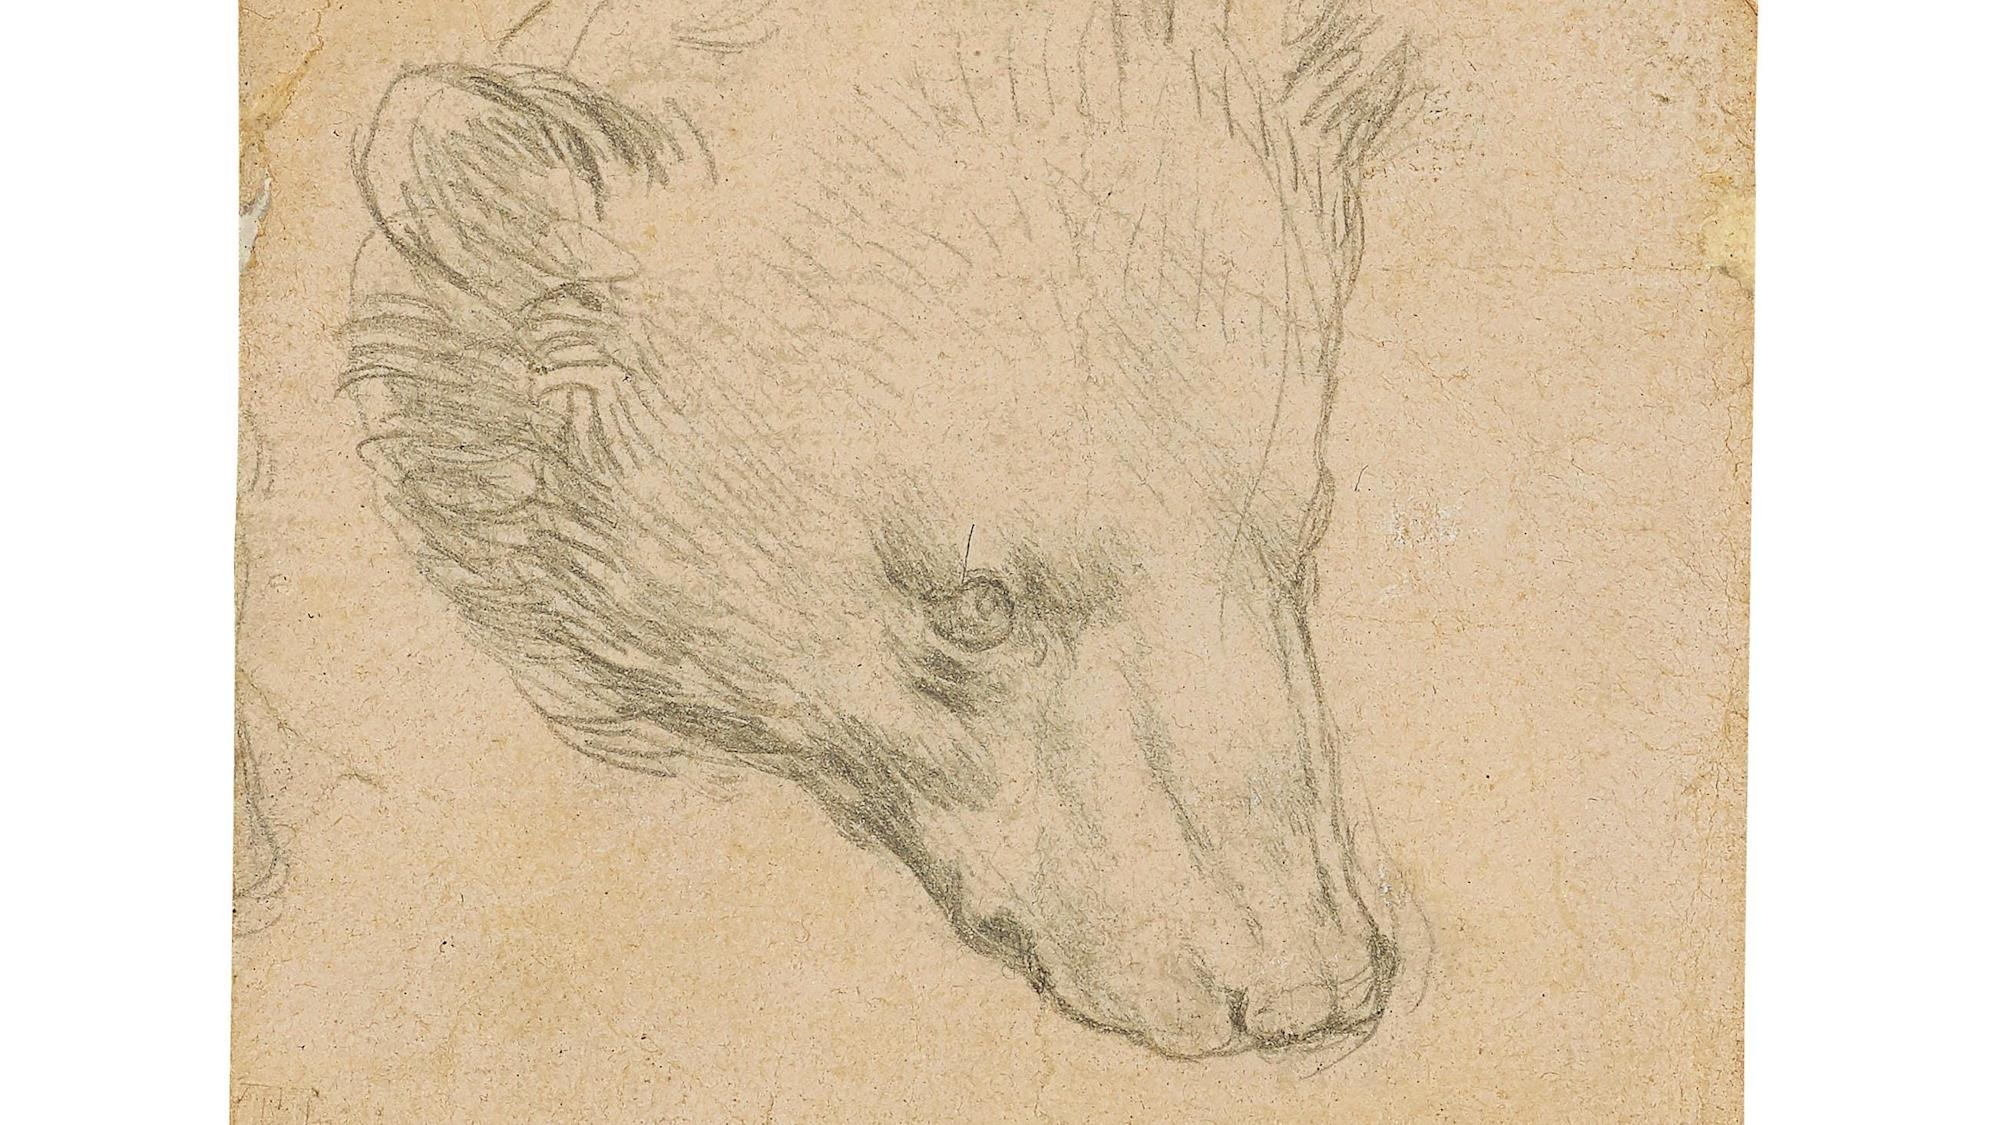 Leonardo da Vinci drawing expected to fetch up to £12m at auction